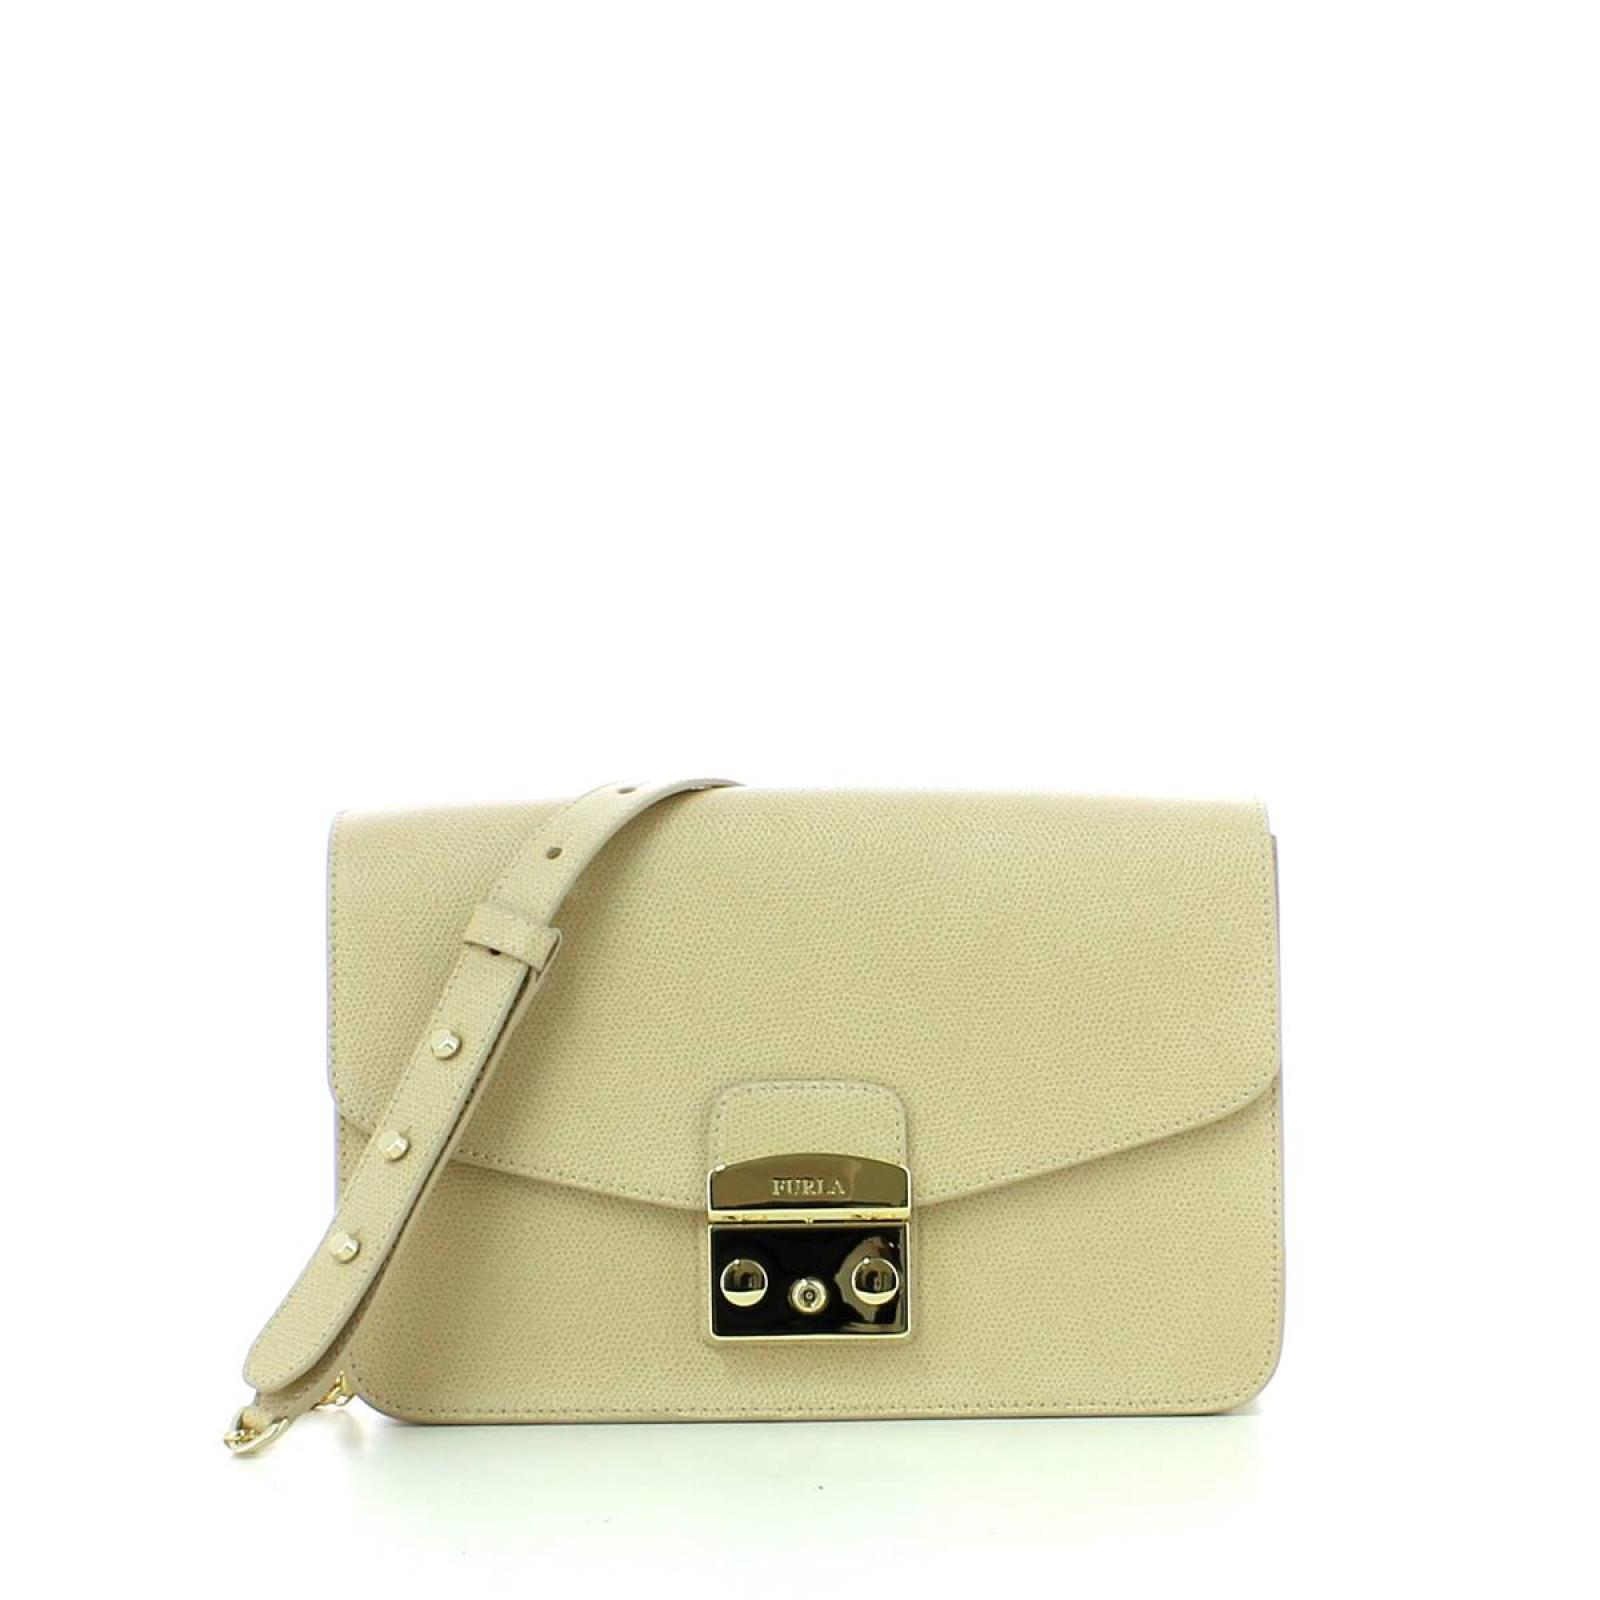 Metropolis S Shoulder Bag-ACERO-UN